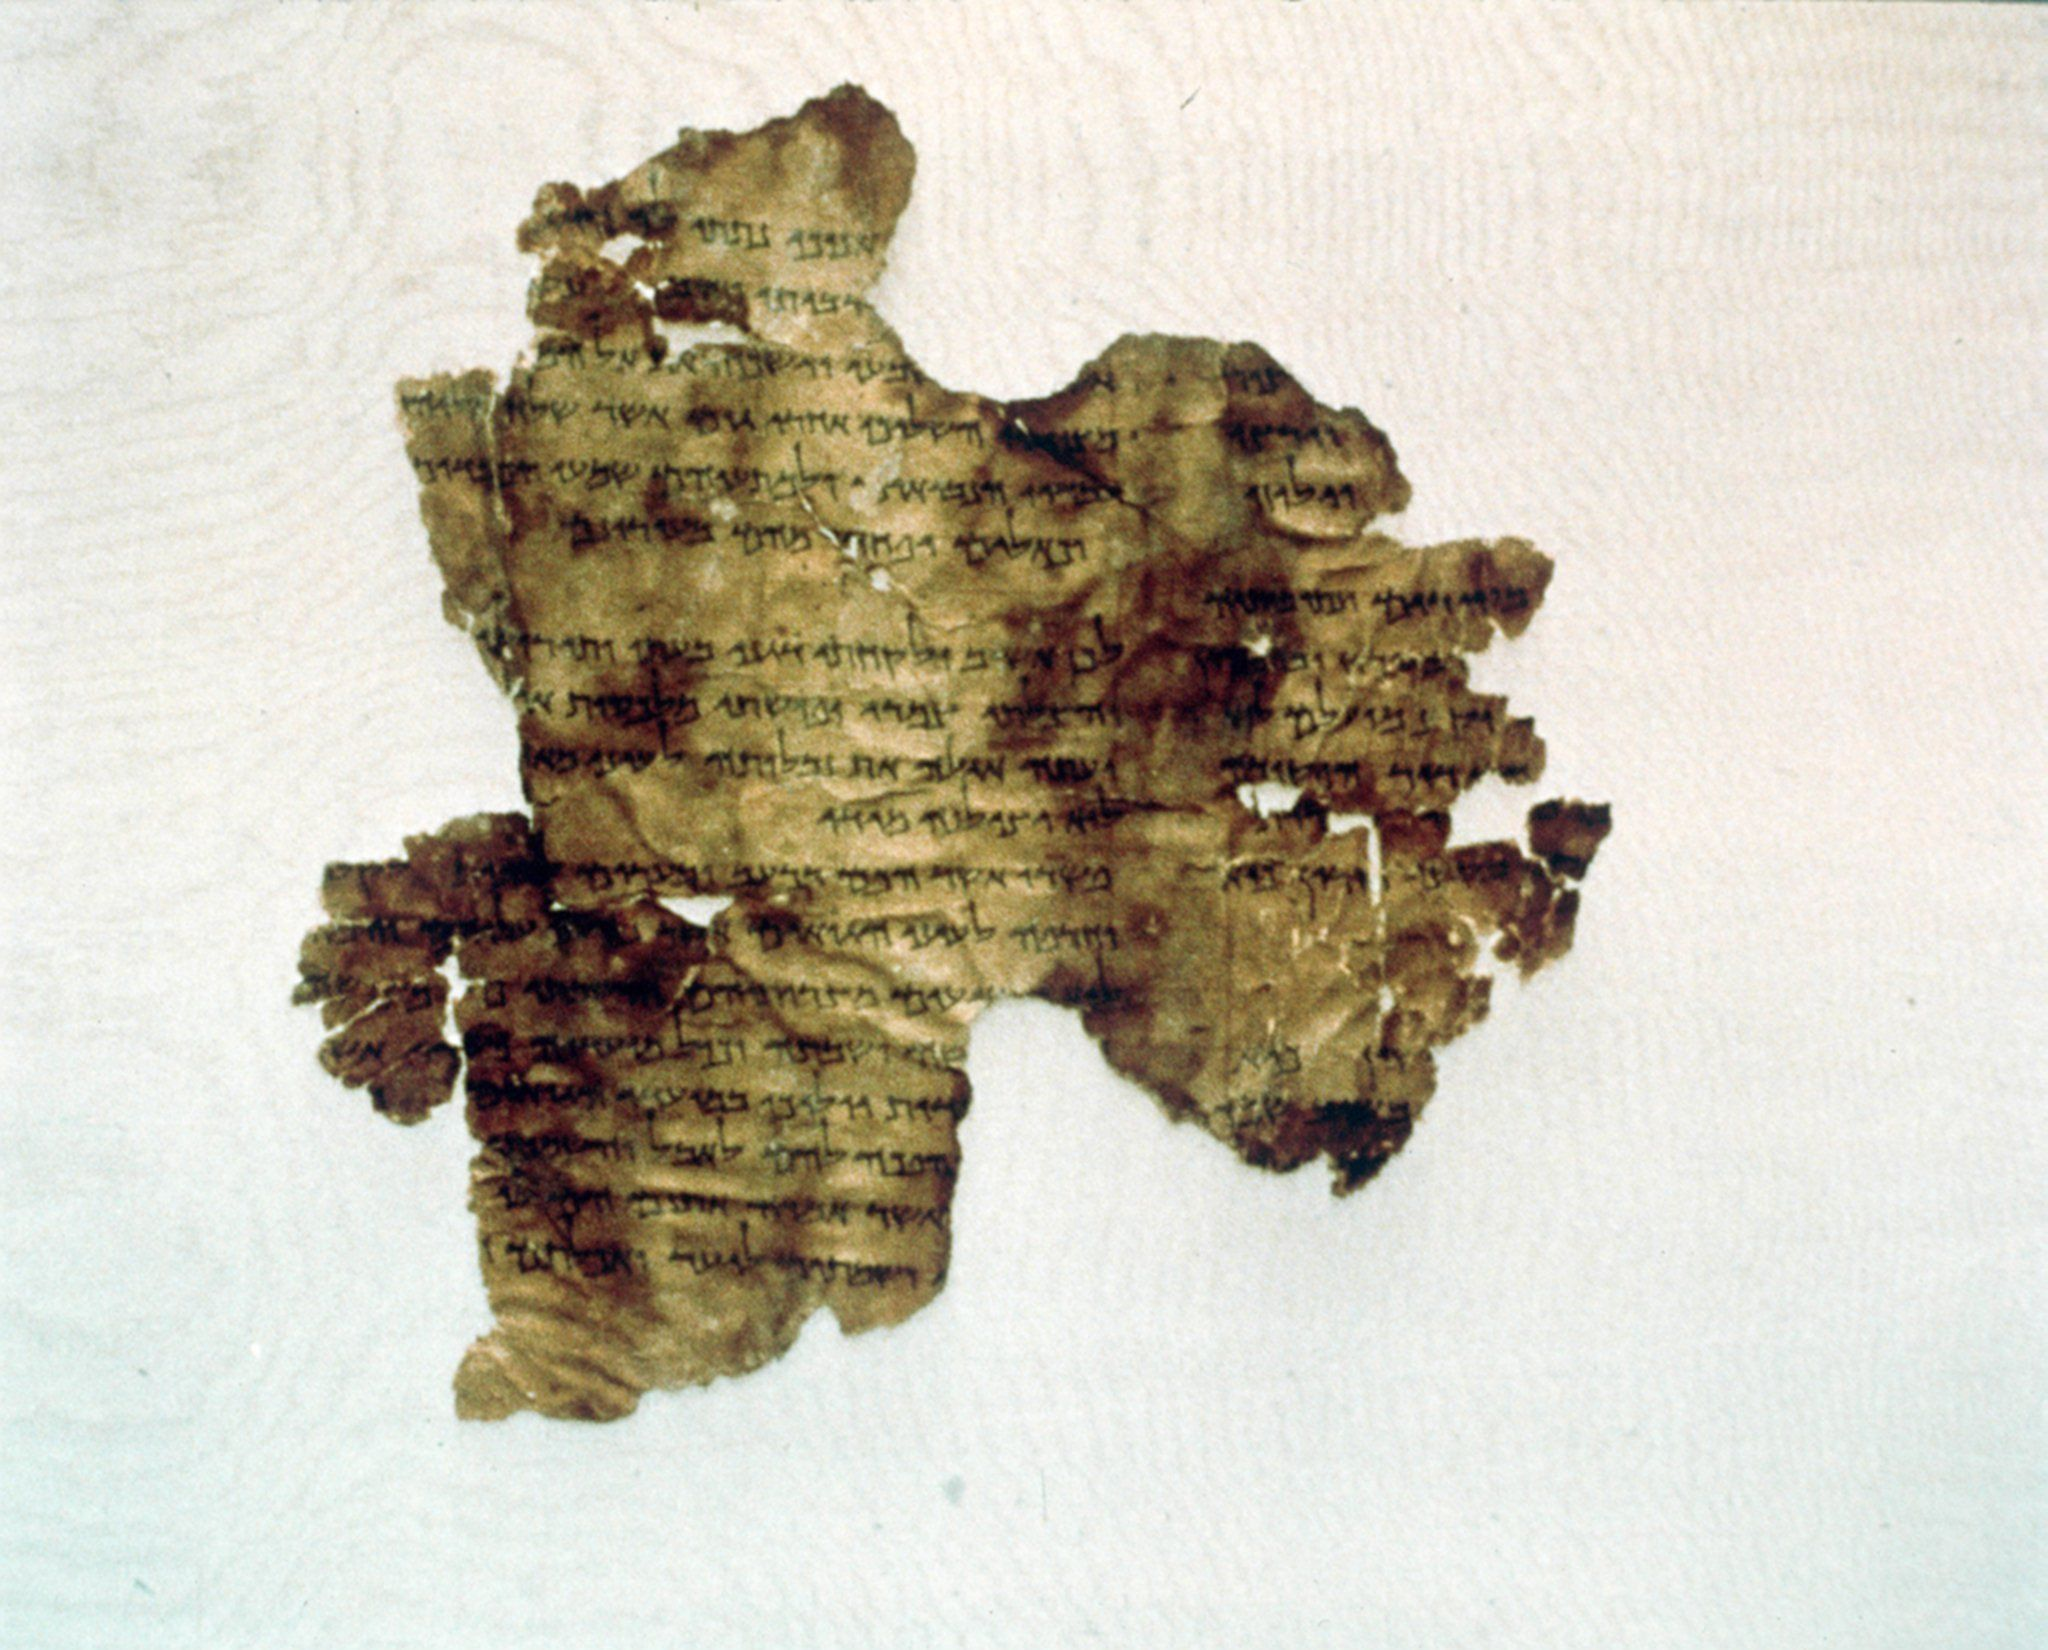 Washington Bible museum says 5 of its Dead Sea Scrolls are fake